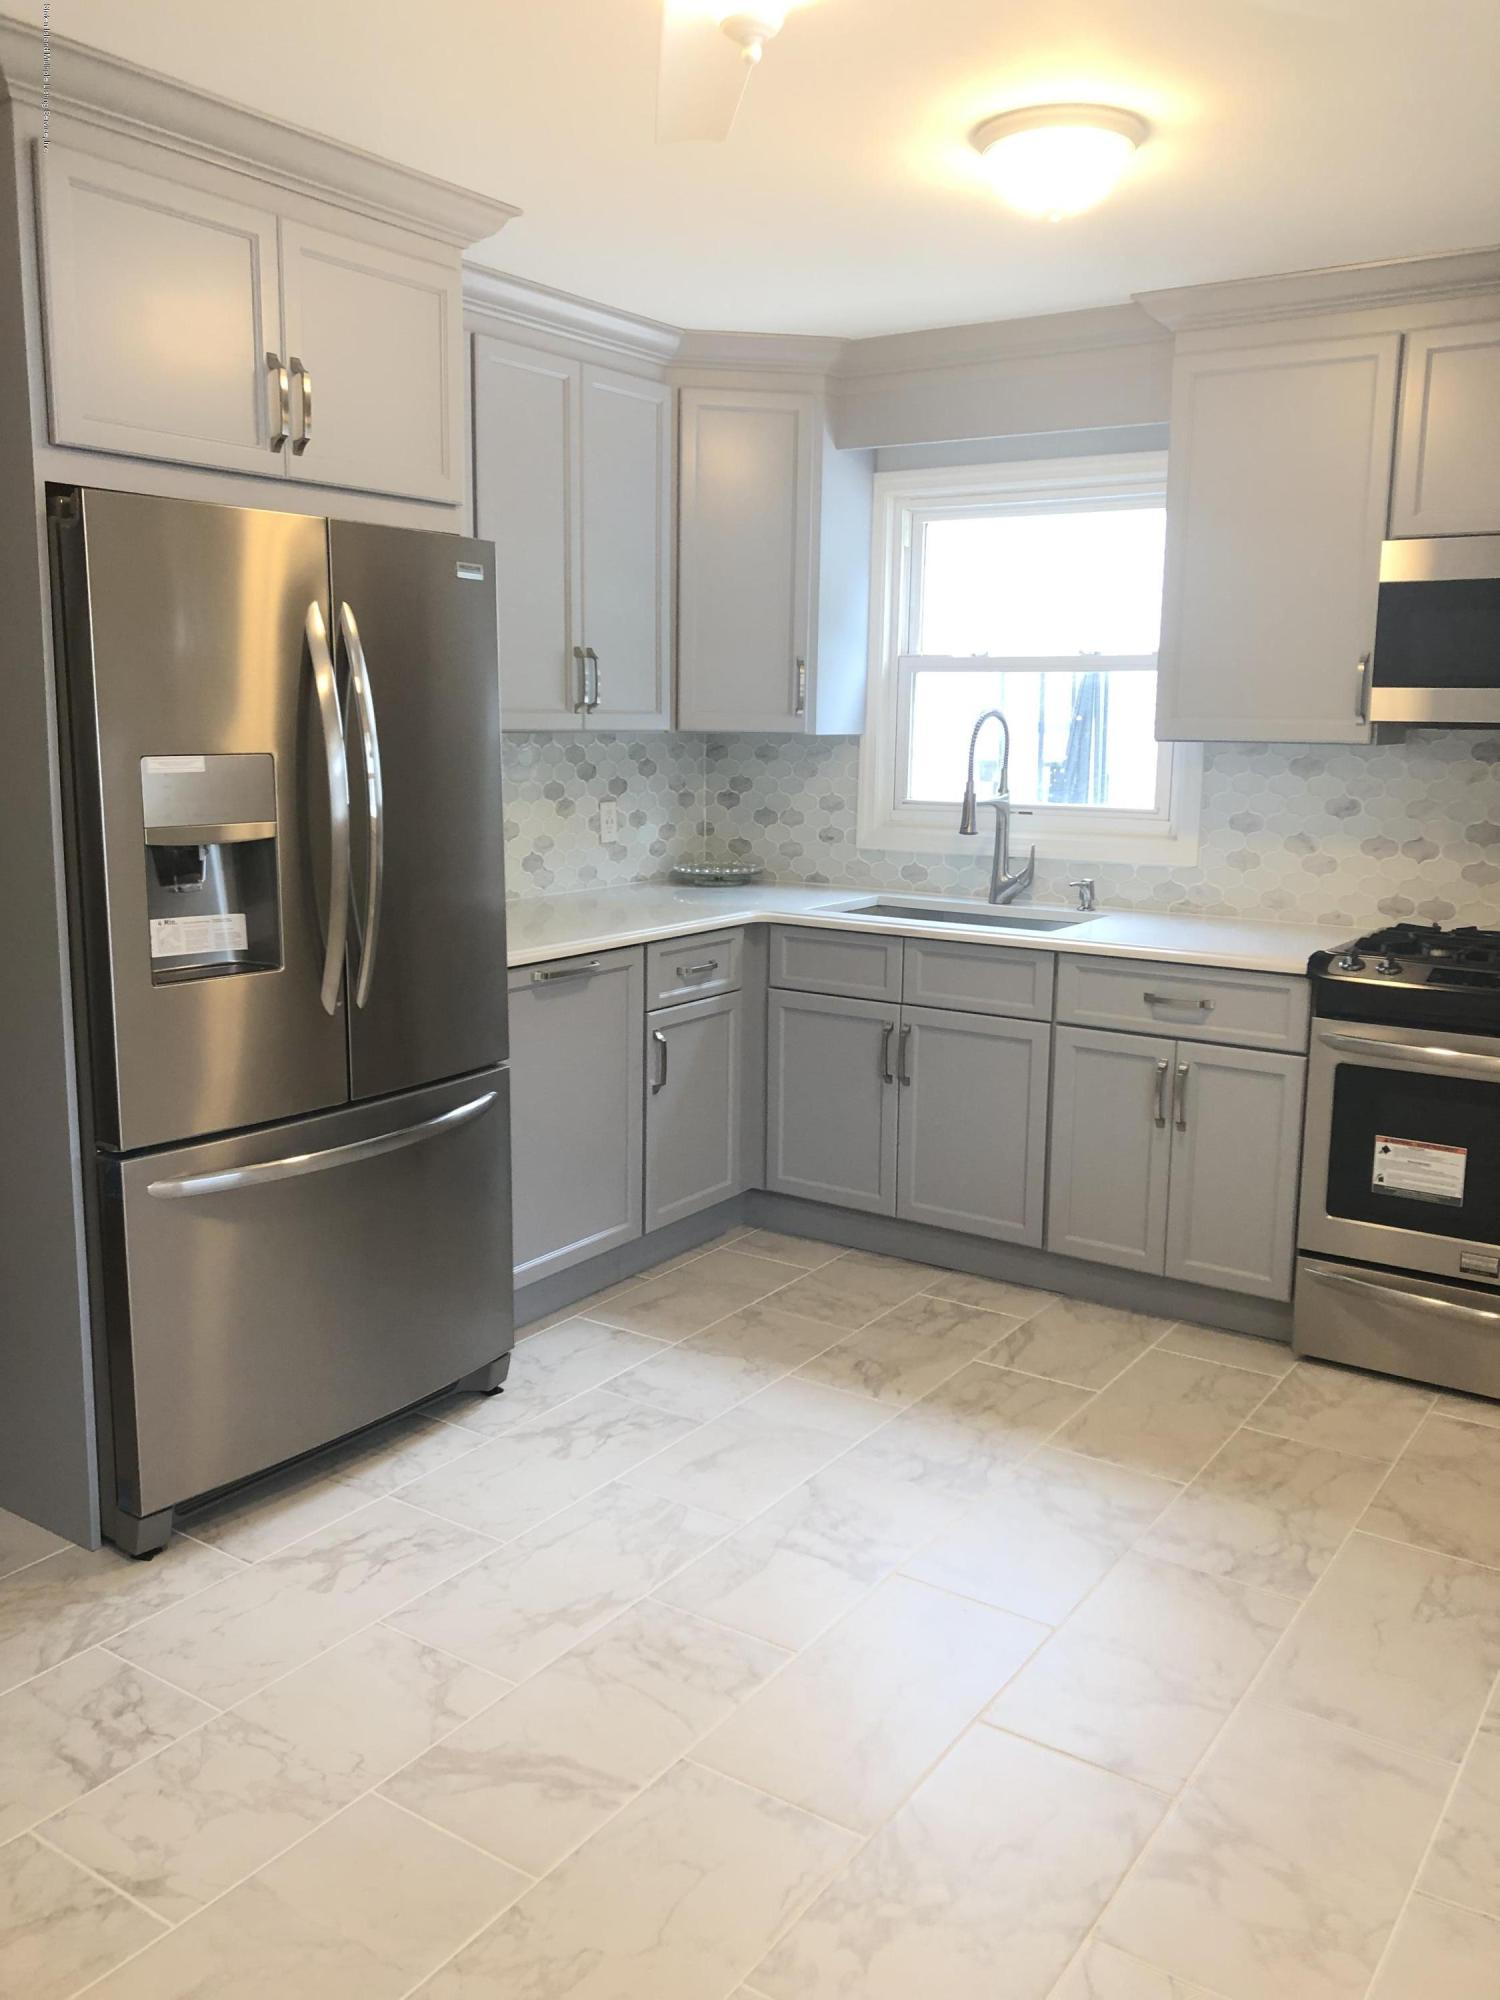 2169 Victory Boulevard,Staten Island,New York,10314,United States,3 Bedrooms Bedrooms,6 Rooms Rooms,2 BathroomsBathrooms,Residential,Victory,1130590